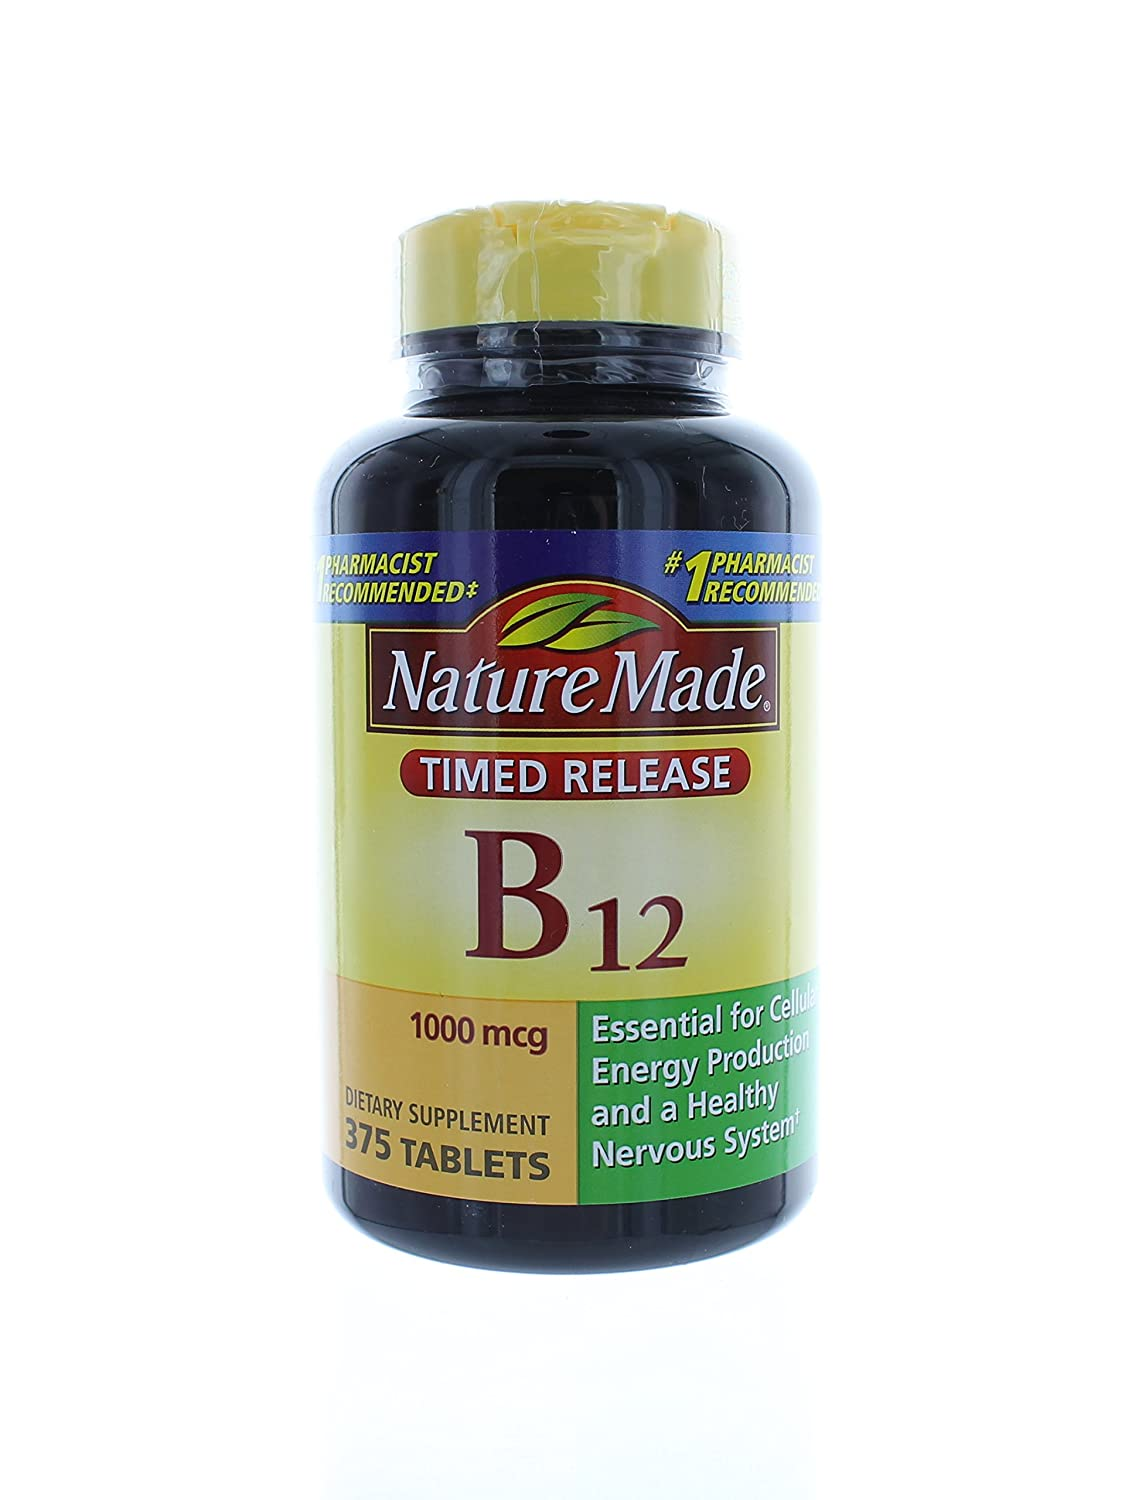 Nature Made Vitamin B12 1000 mcg 375 Timed Release Tablets